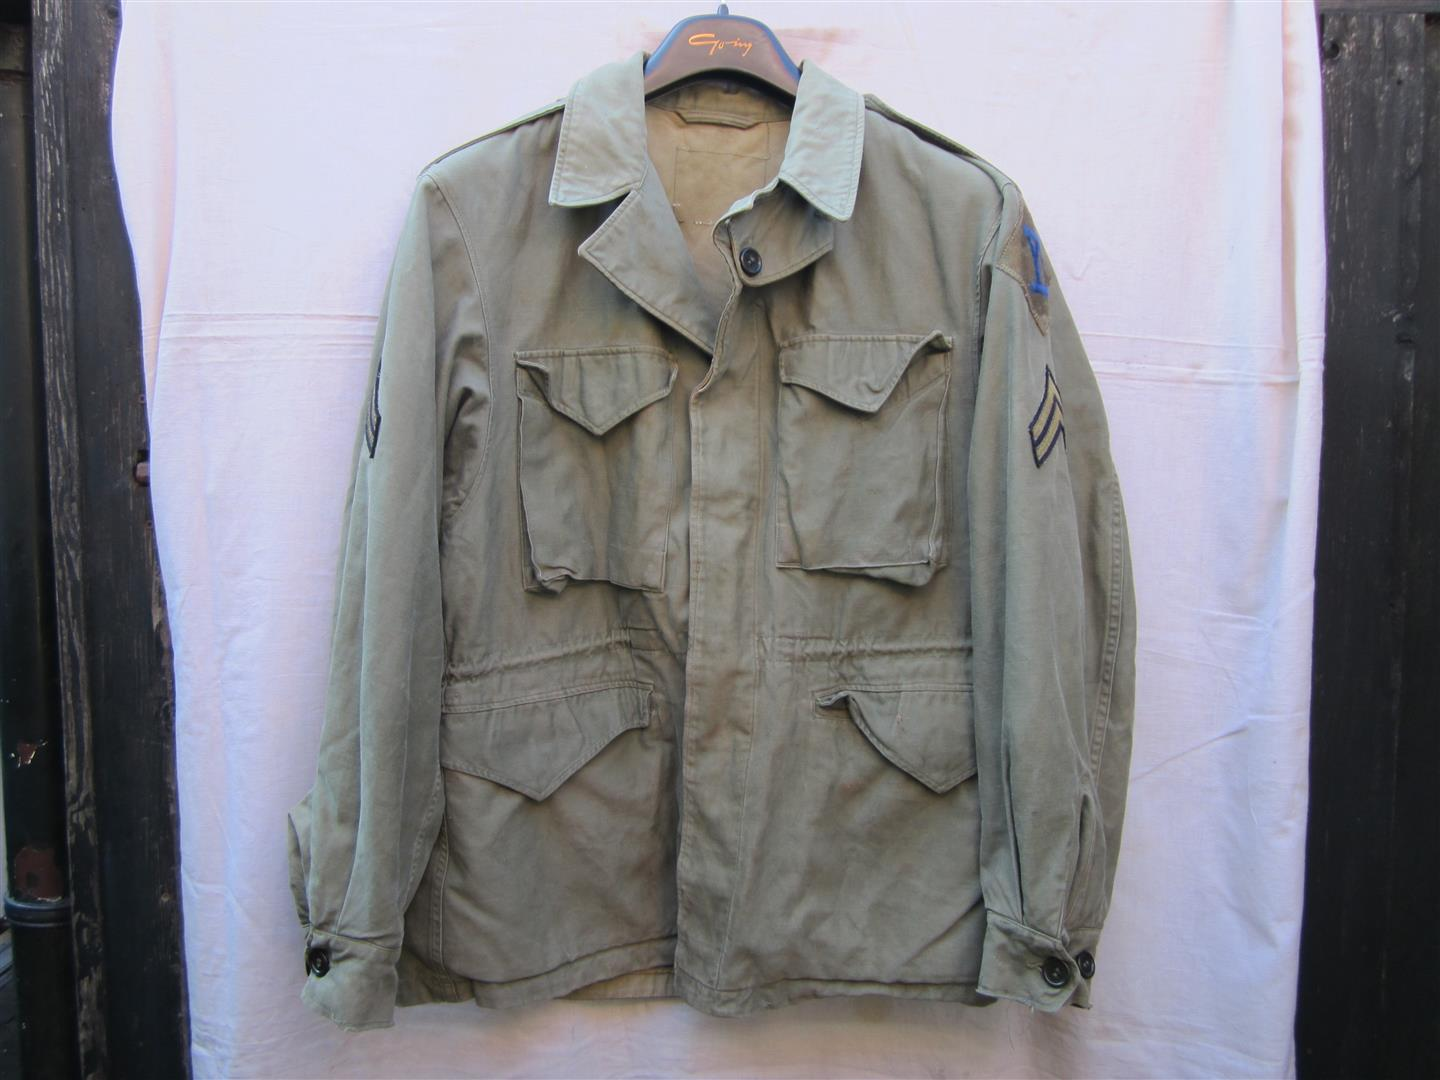 WW2 U.S. M43 Jacket, 26th Inf. Div.